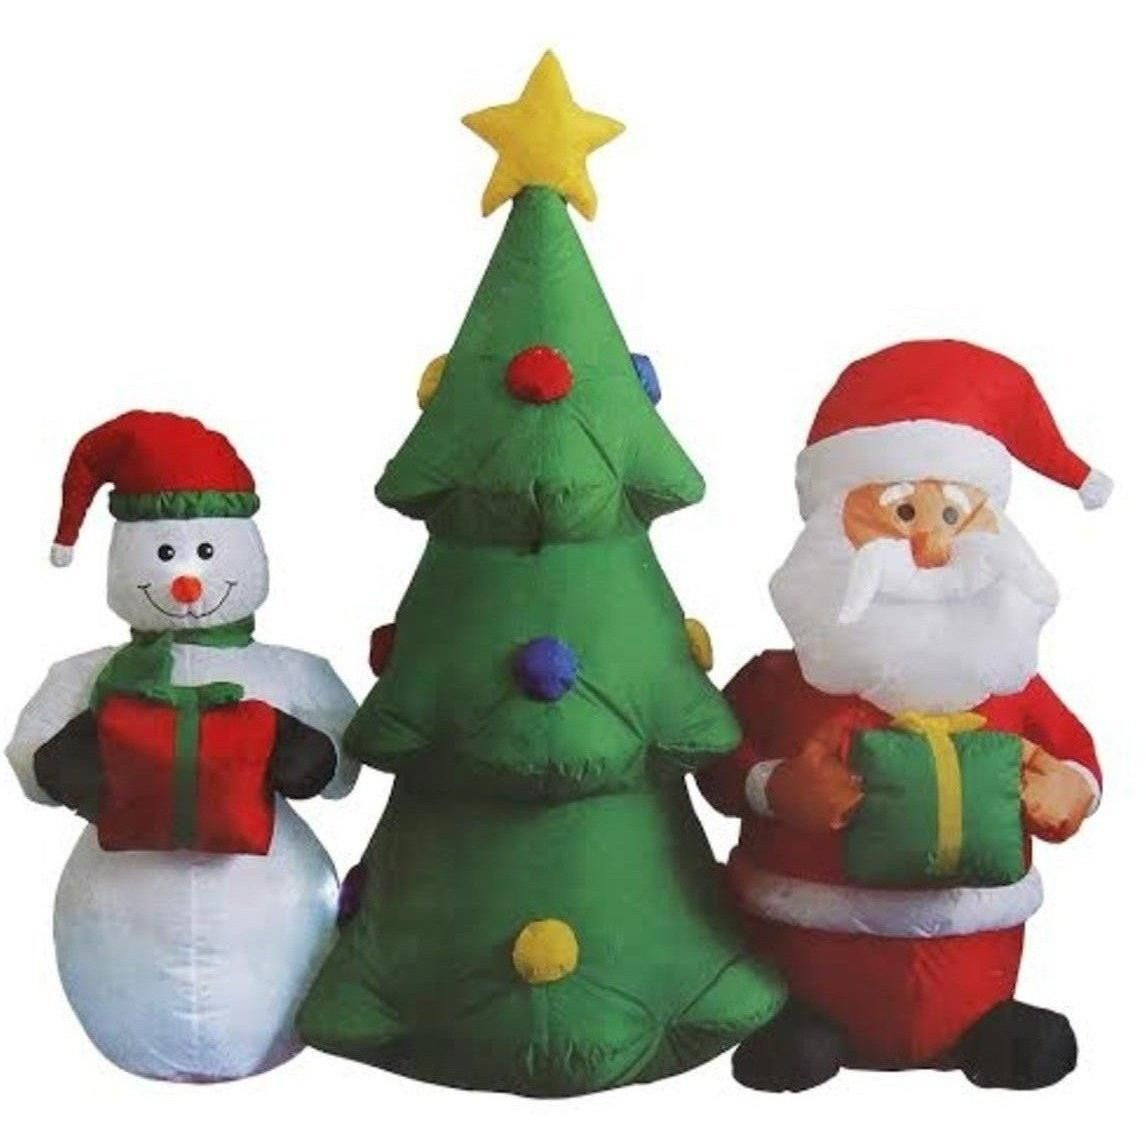 BZB 5u0027 Inflatable Tree, Santa And Snowman Lit Christmas Yard Décor